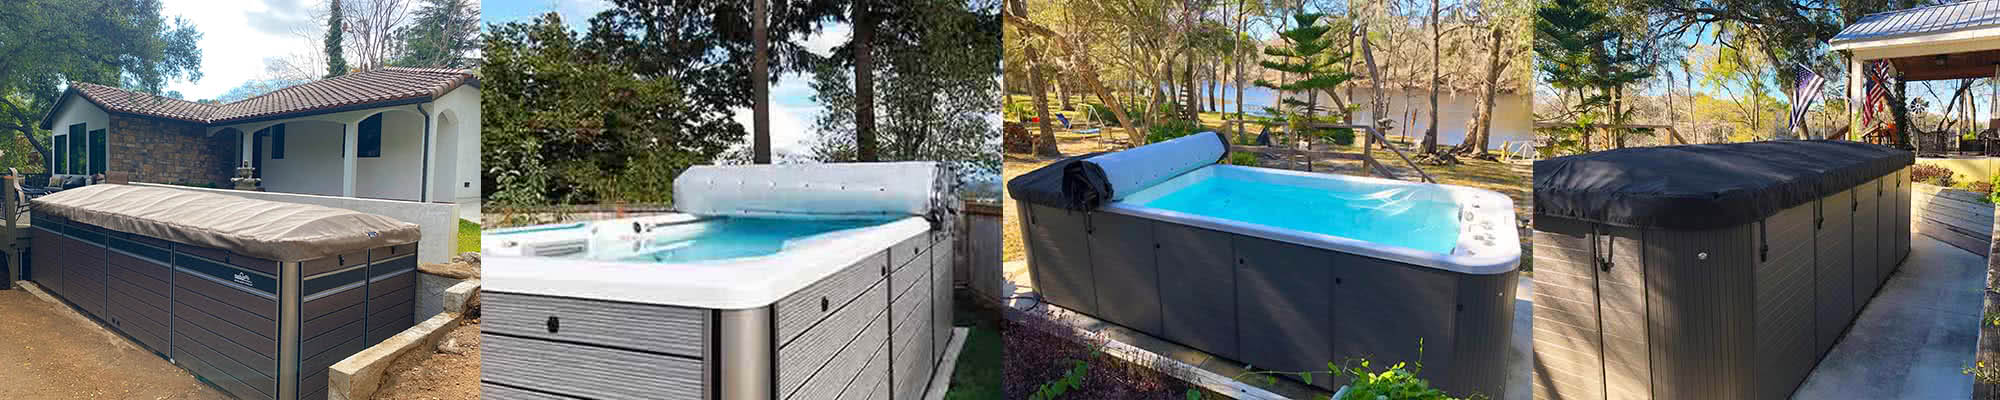 Swim-Spa-Covers-by-End-2-End-Swim-Spa-Covers